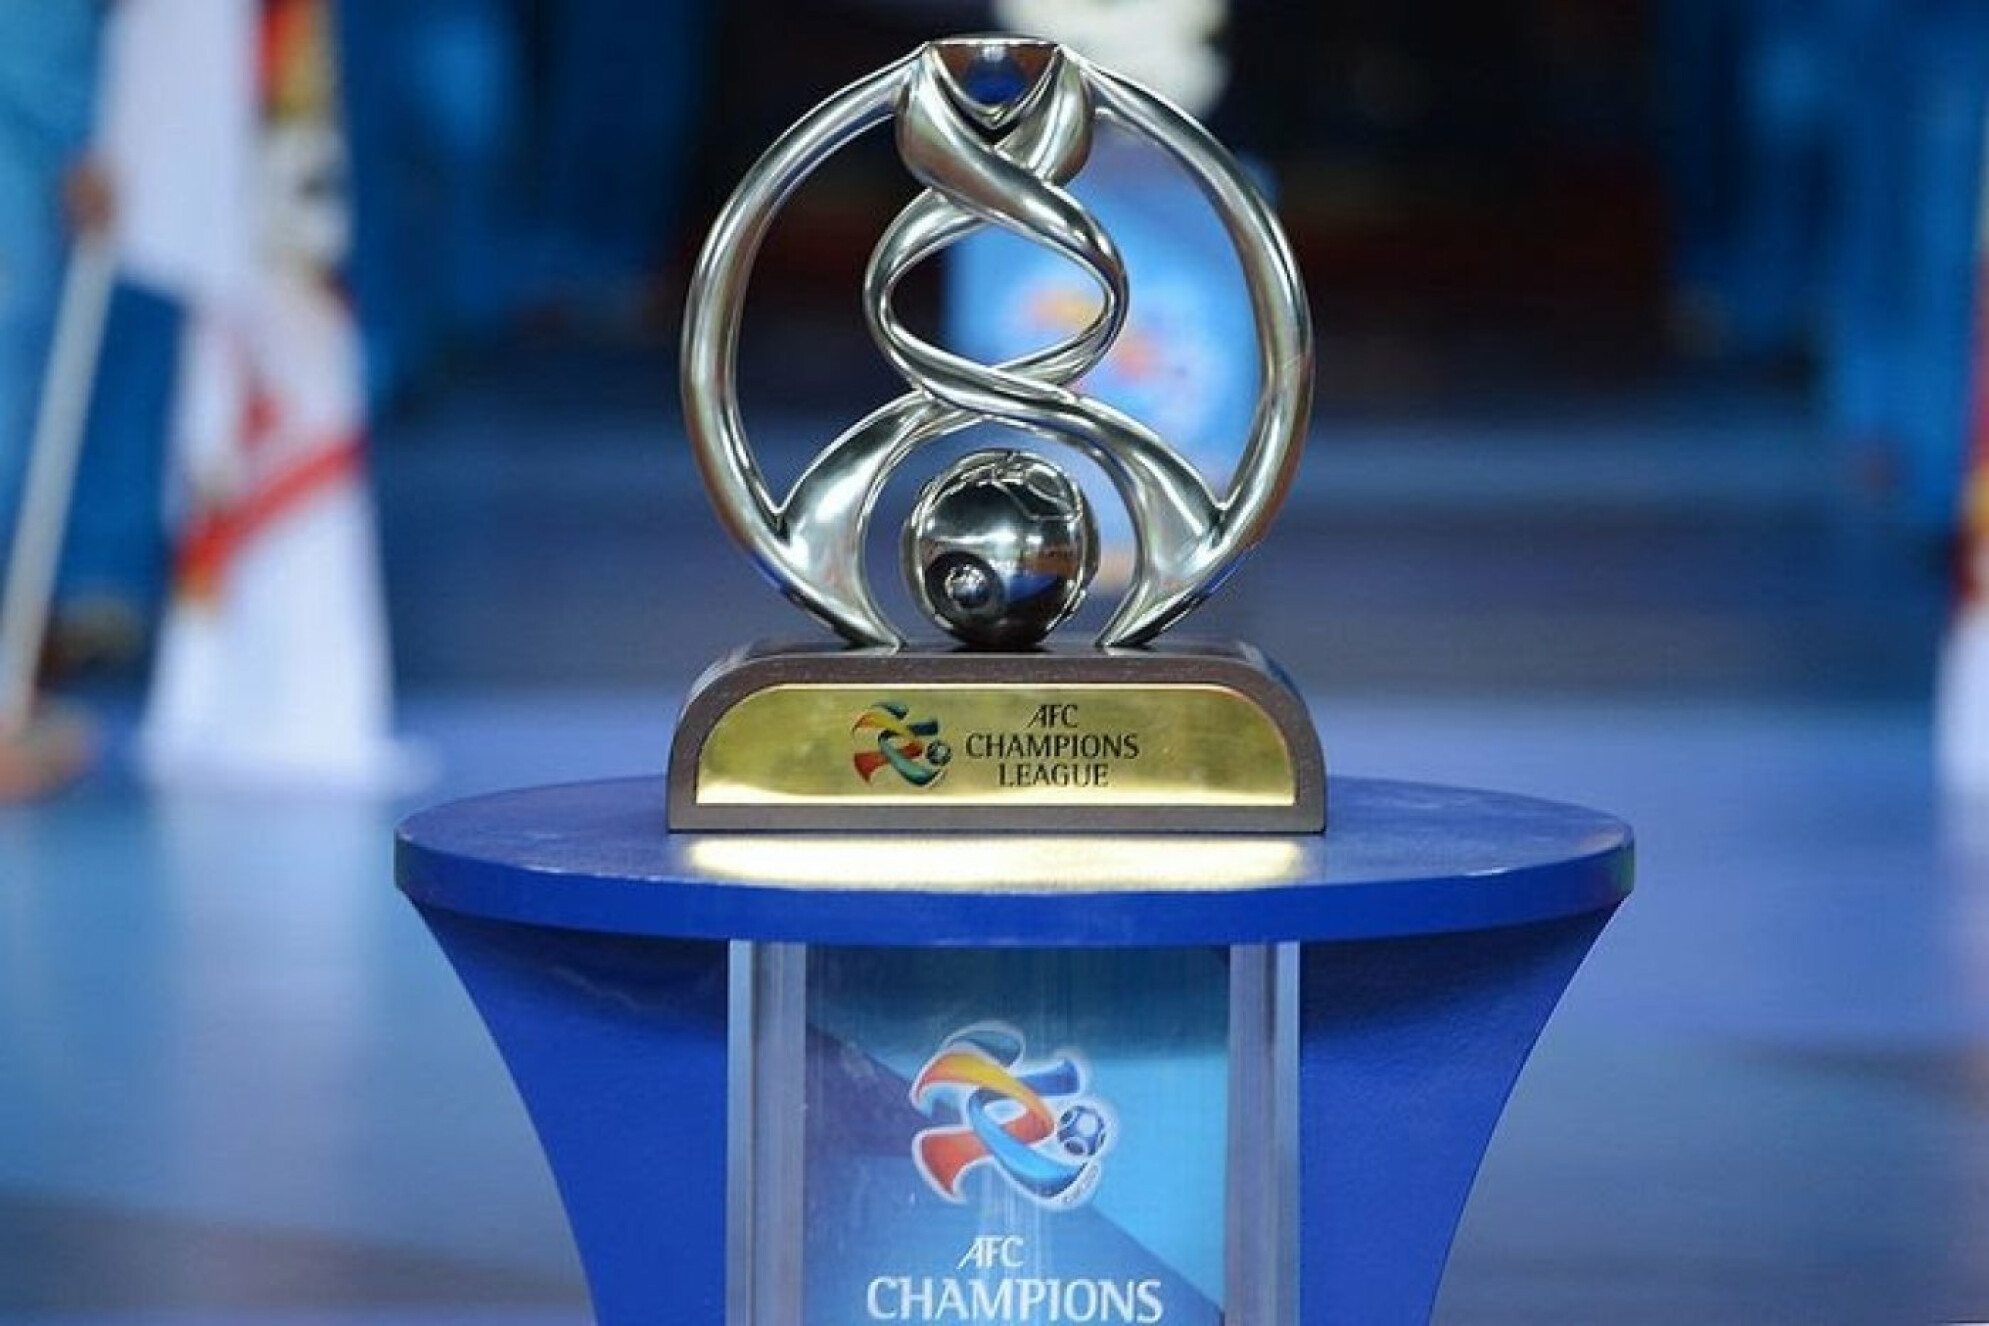 How can Indian clubs play in the AFC Champions League?